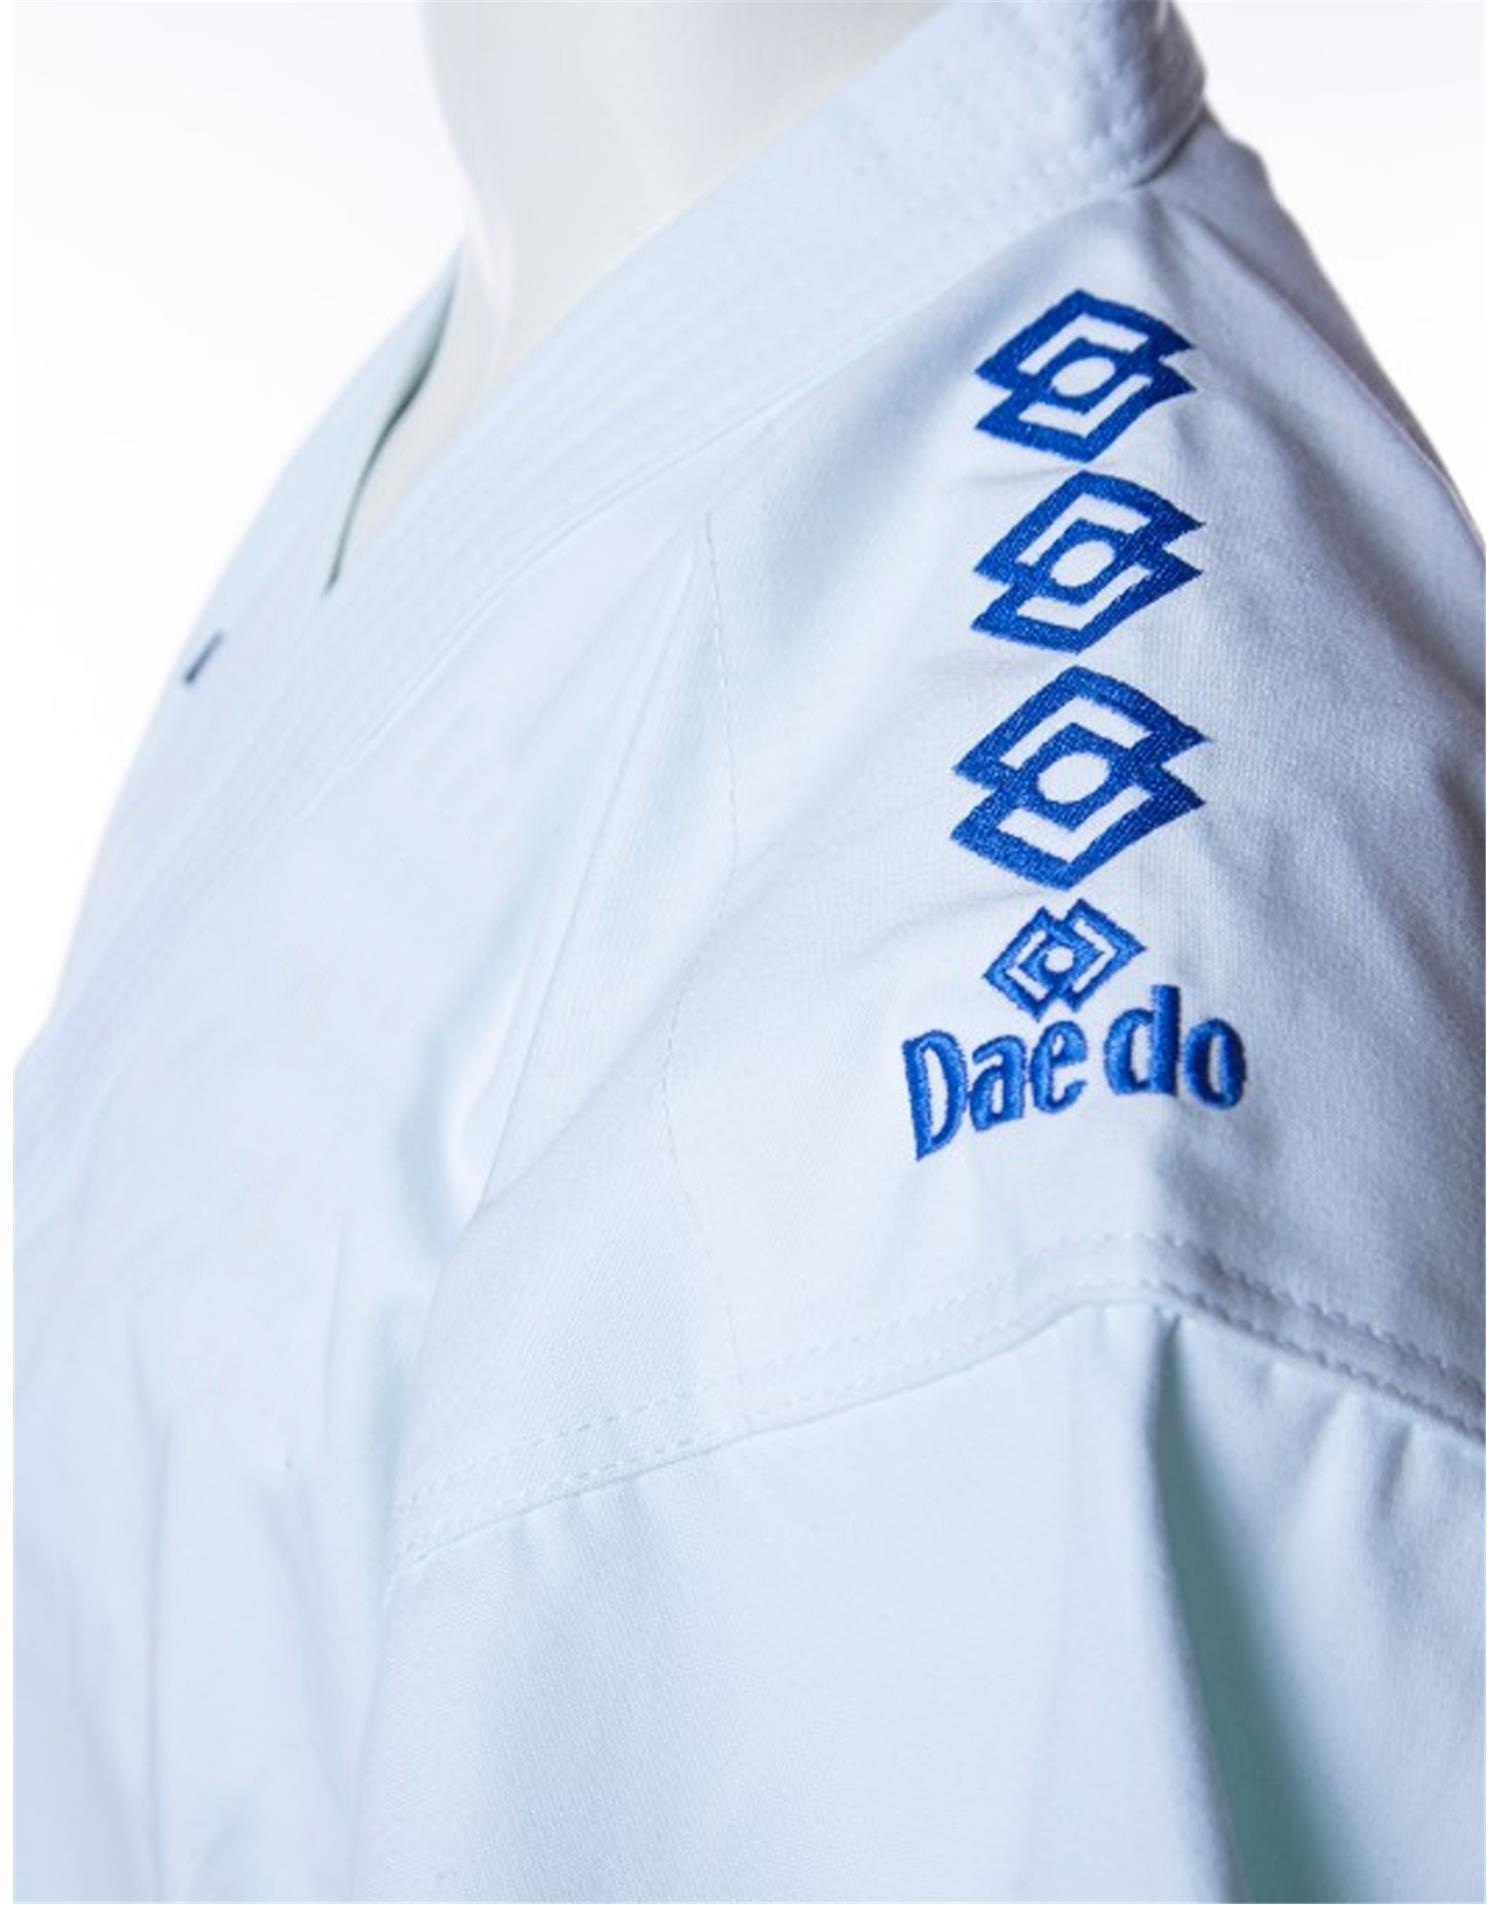 Dae Do BORDATURA BLU LOGO DAEDO